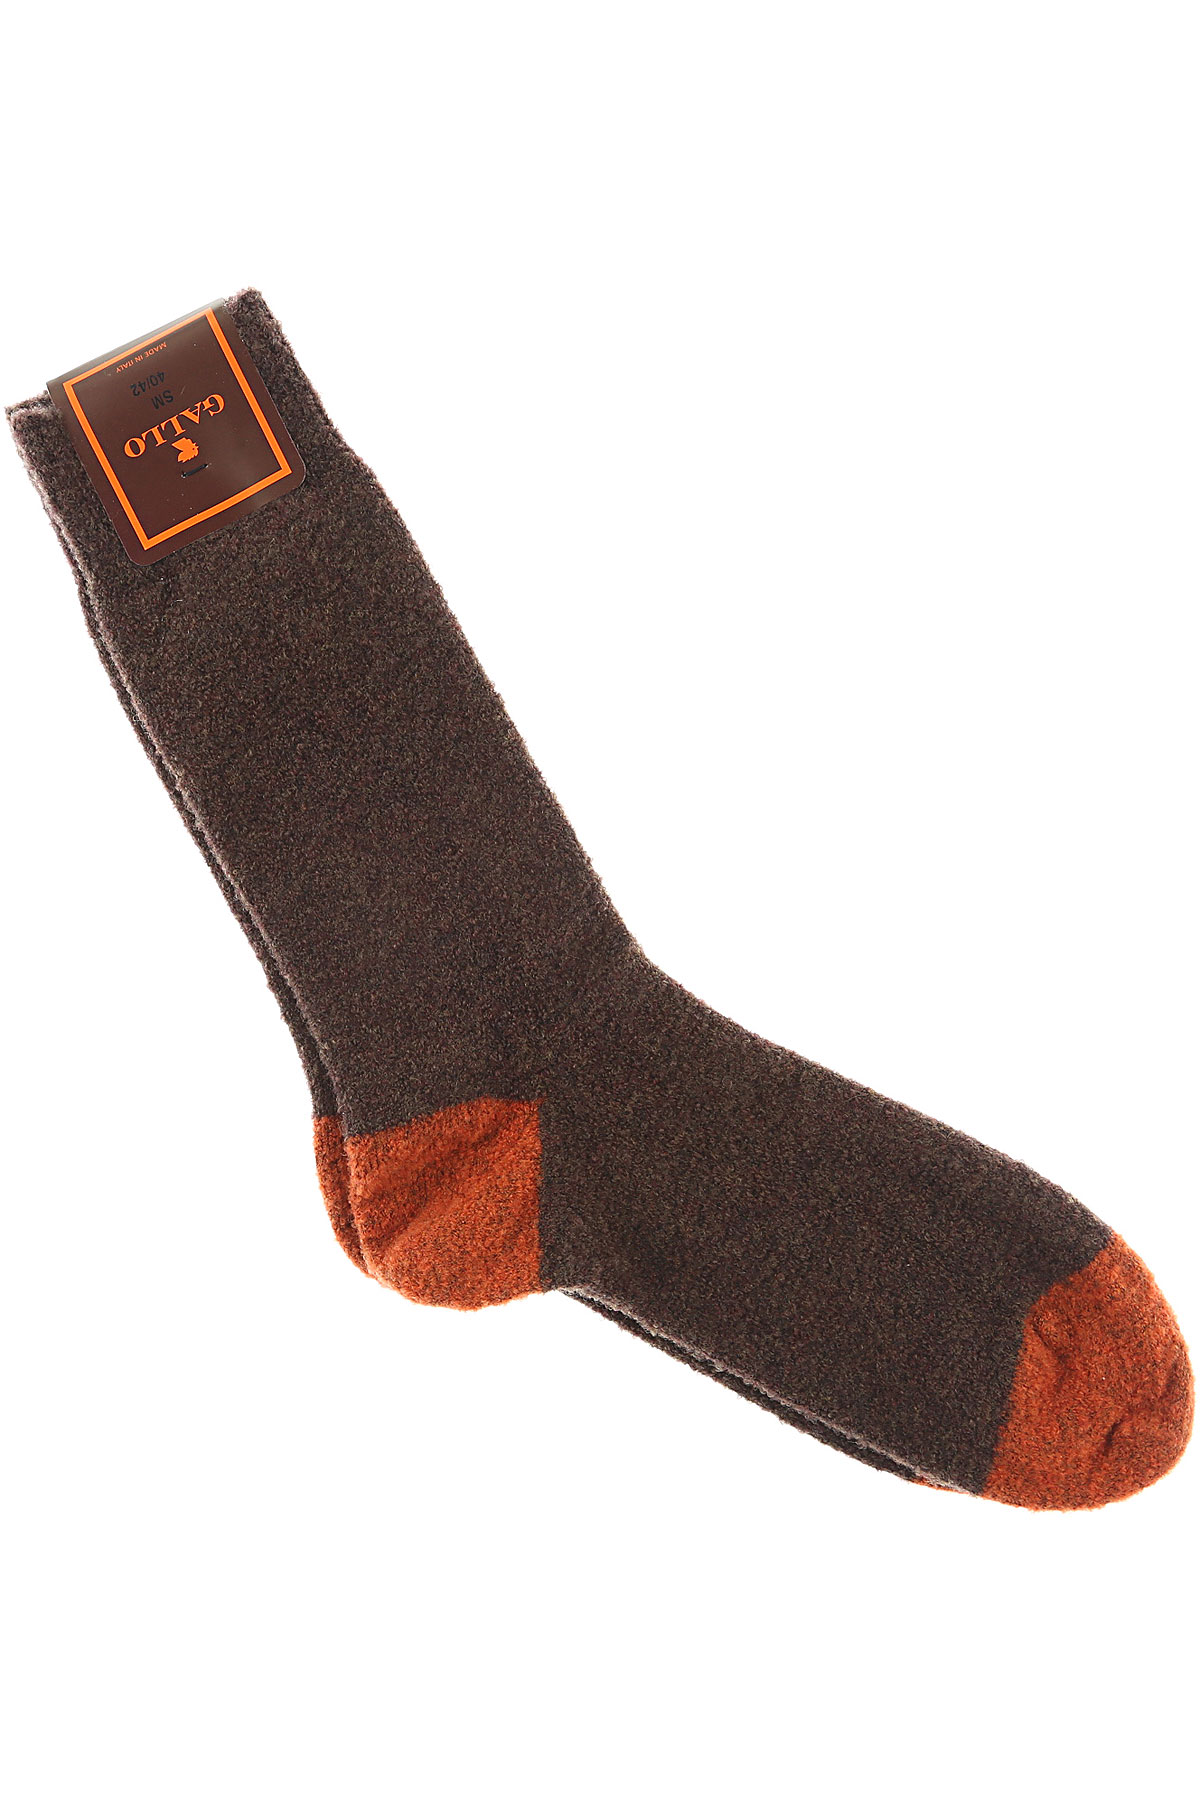 Image of Gallo Socks Mens Underwear, Brown, Wool, 2017, S - M L - XL